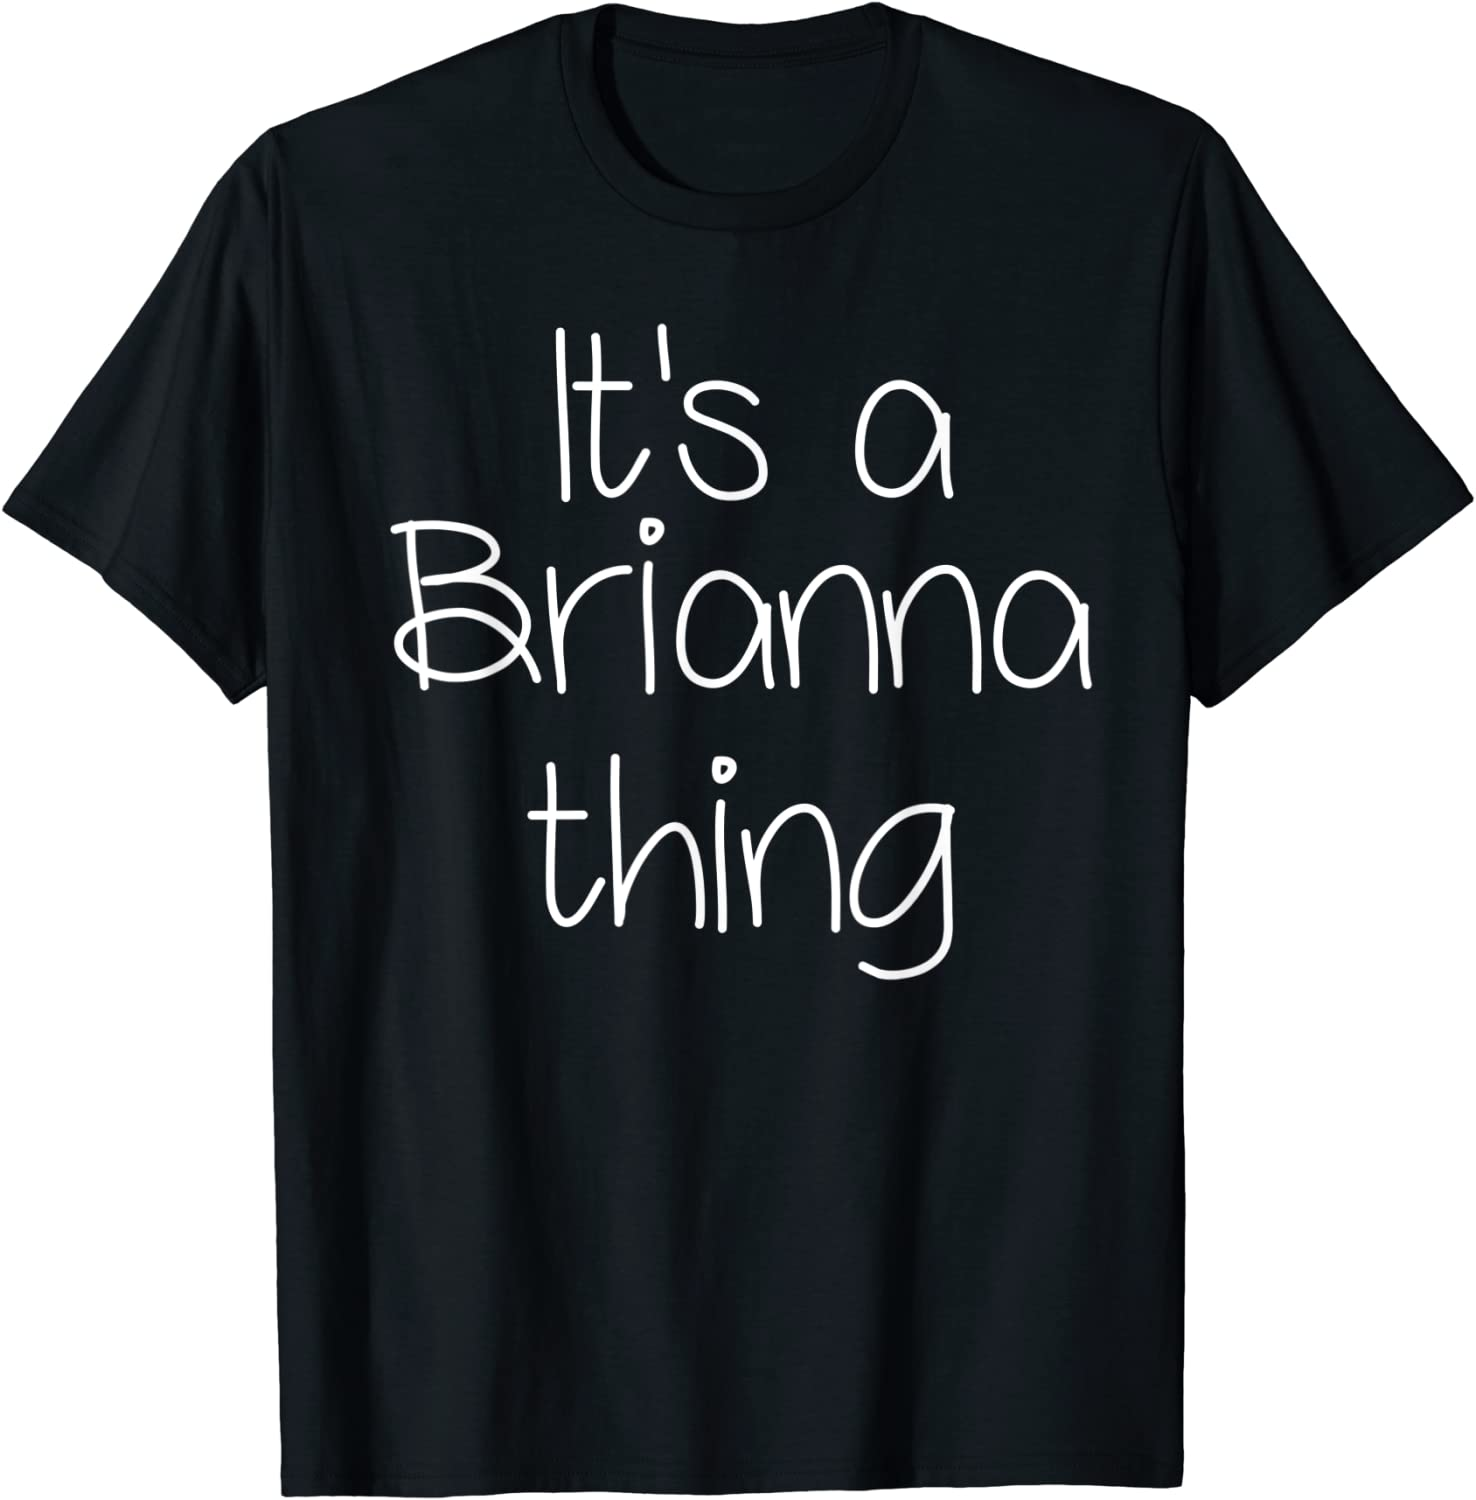 IT'S A BRIANNA THING Funny Birthday Women Name Gift Idea T-Shirt